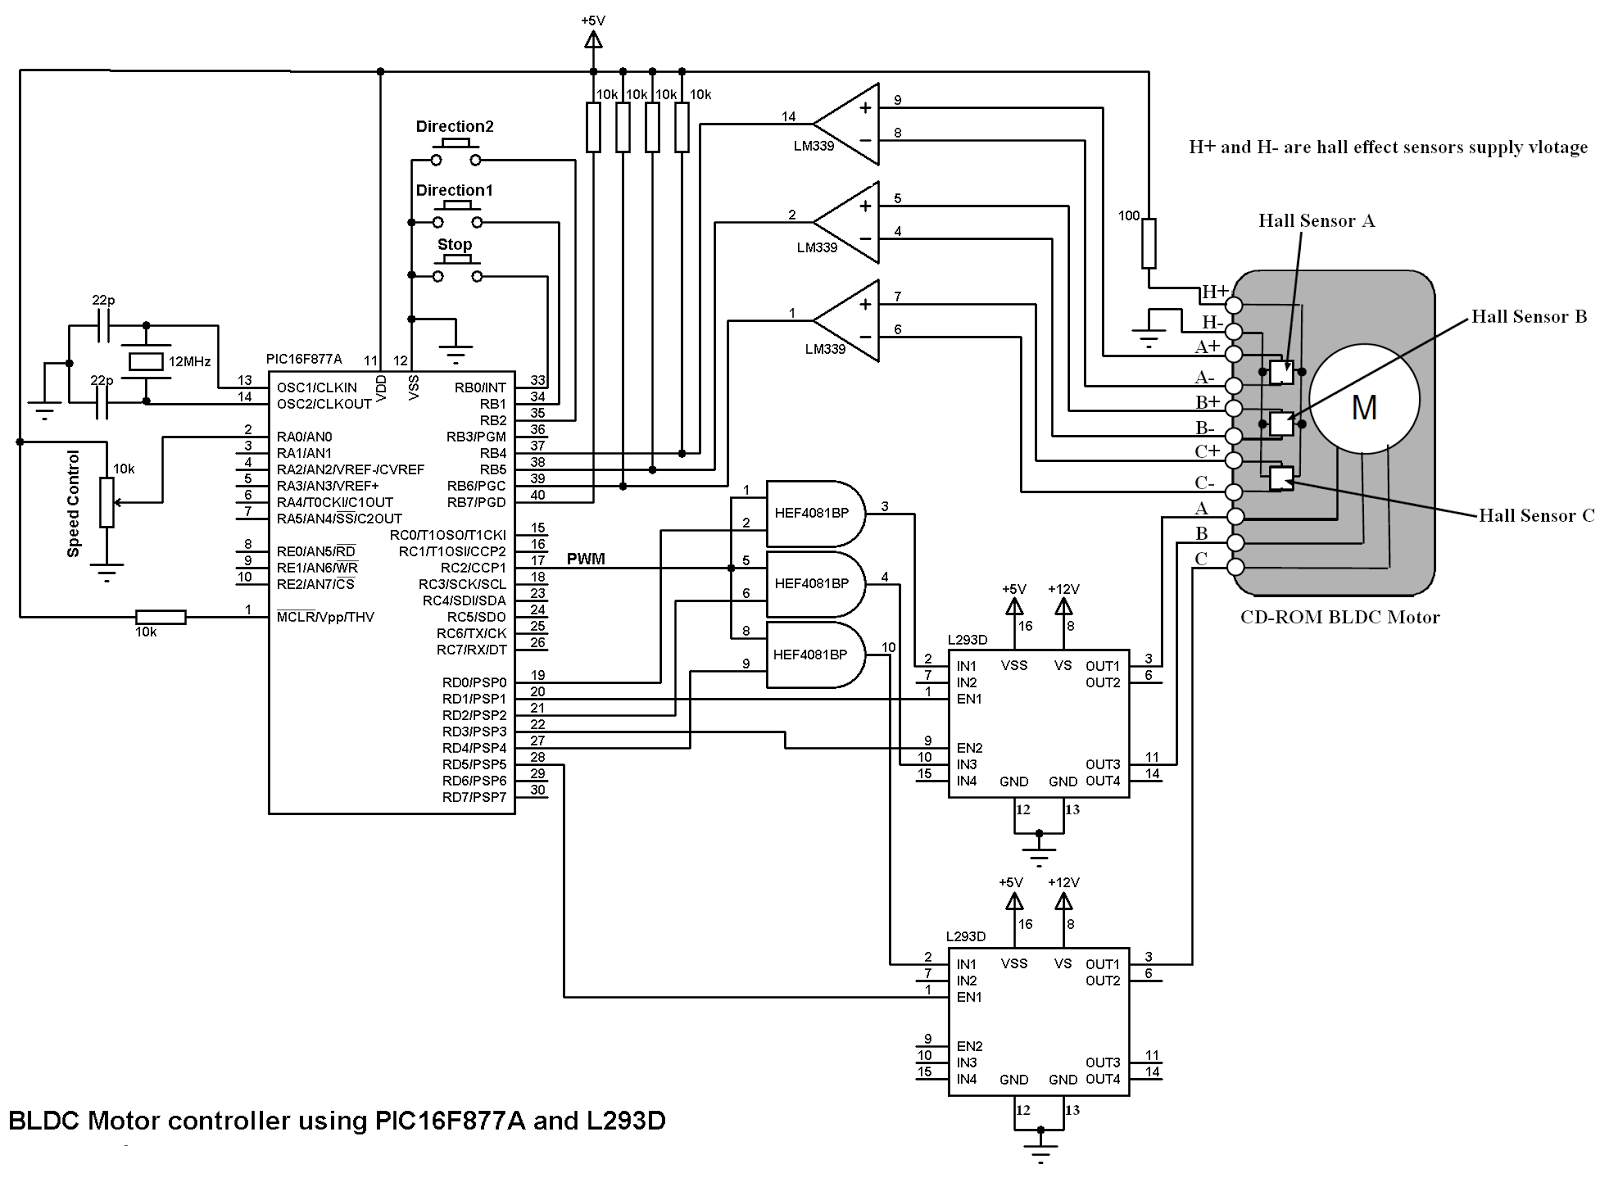 Bldc Motor Control Using Pic16f877a And L293d